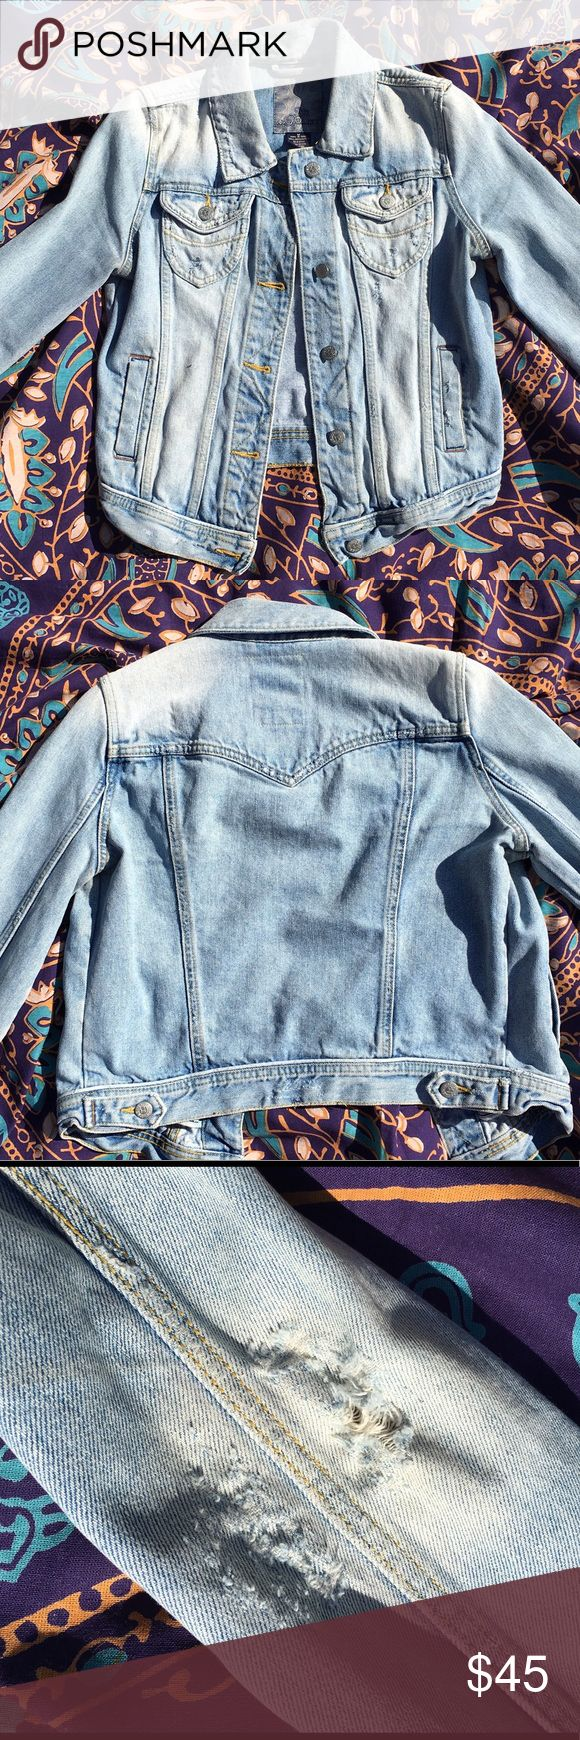 BB Dakota Worn Denim Jacket M Perfectly distressed light-wash denim jacket! BB Dakota Jackets & Coats